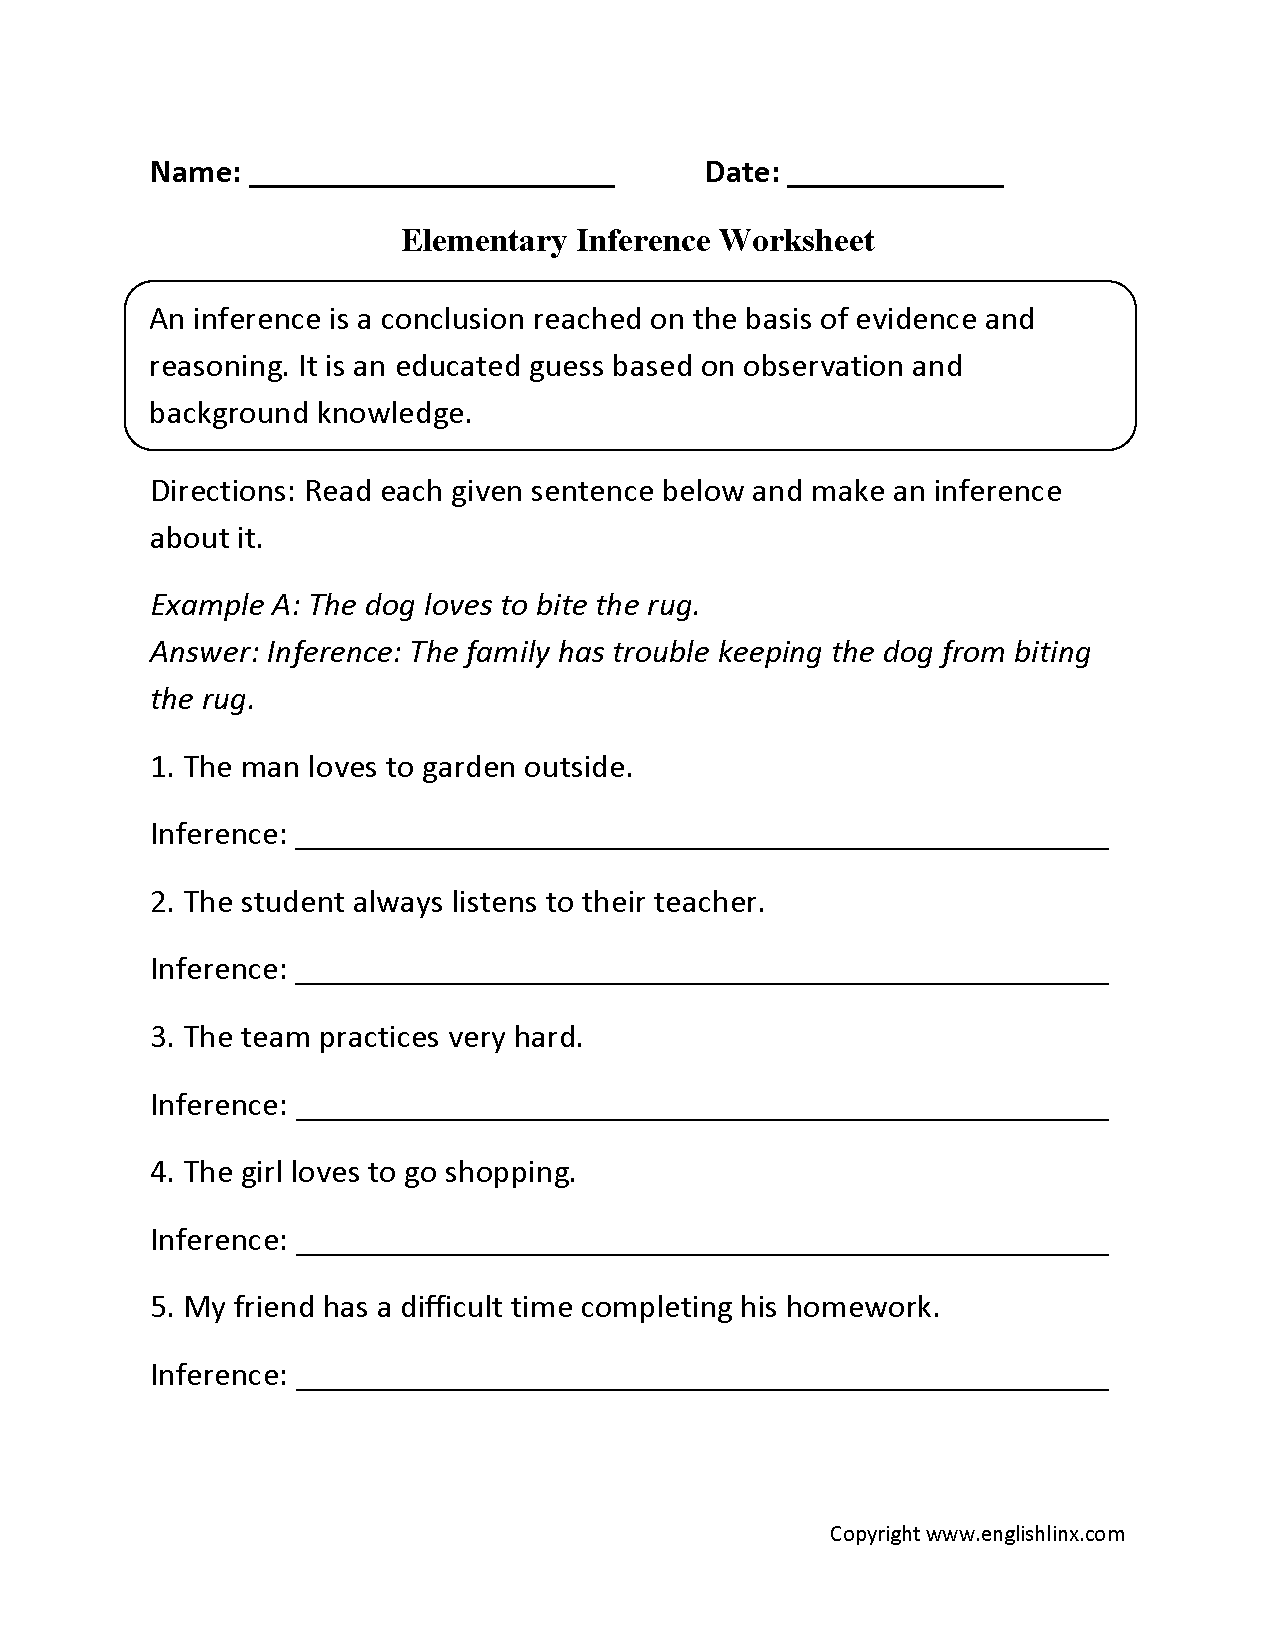 Elementary Inference Worksheets   Inferencing [ 1650 x 1275 Pixel ]